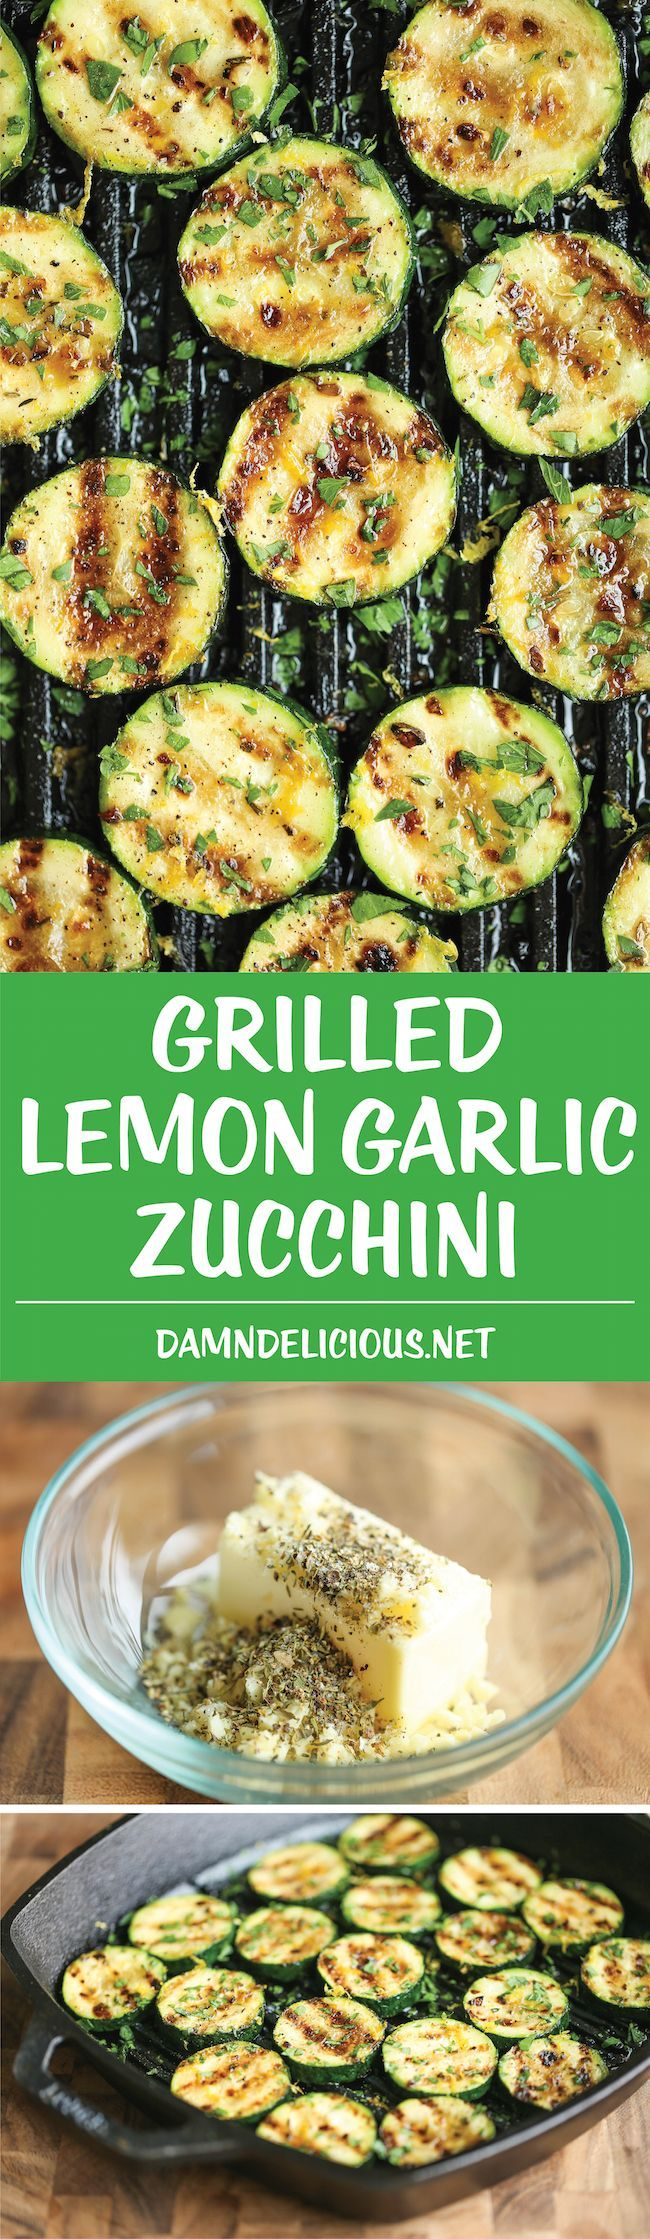 Grilled Lemon Garlic Zucchini - this was very tasty! A couple changes… I think it needed more of that italian seasoning, 1tsp just didn't seem like enough. I would also make sure the zucchini is room temp (ours was in the fridge) cause the butter hardened on them instead of nicely coating them. Otherwise the flavour was nice and subtle. Loved the lemon juice (used about 3/4 of the juice from a lemon instead of the whole thing which was perfect) Will make again with a few adjustments! :)